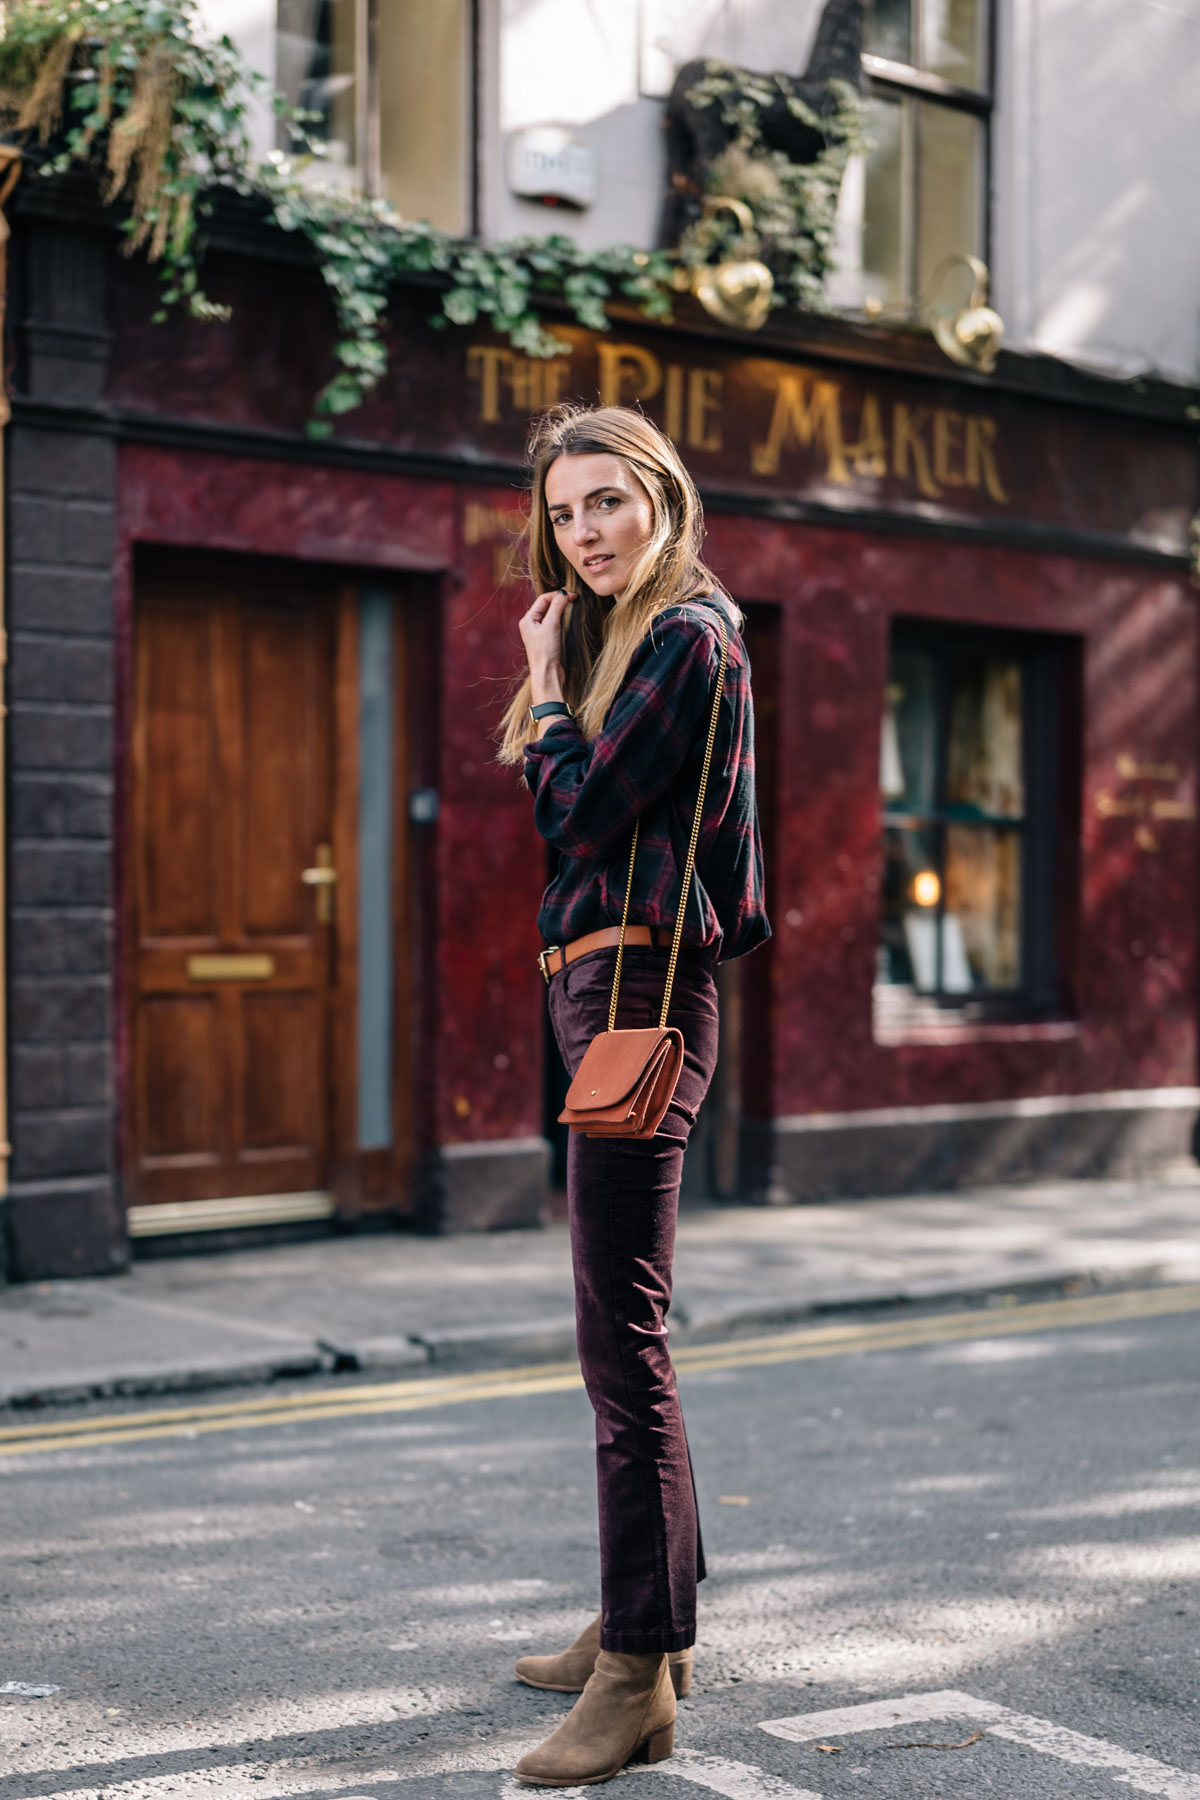 Jess Ann Kirby styles Paige Denim Velvet Pants with Ankle Booties and a Plaid Shirt